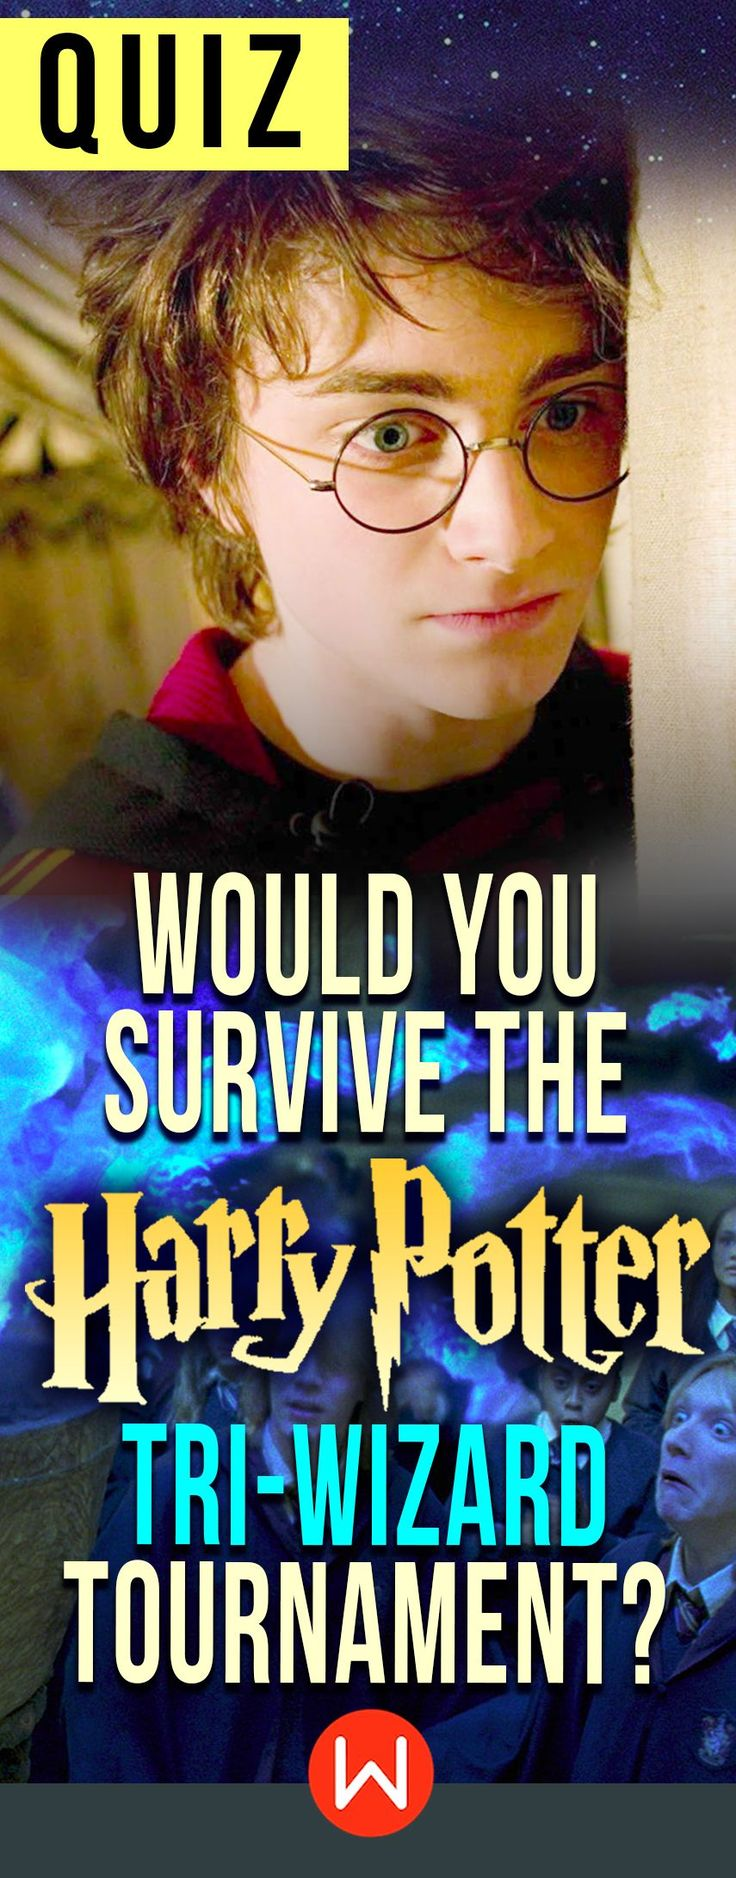 Quiz: Would you survive the Tri-Wizard Tournament? Do you have what it takes to win the hardest contest in the wizarding world? This HP quiz will test your wizard/witch skills. Harry Potter quiz, HP trivia questions, Hermione Granger, Ron Weasley, Cedric Diggory, Fleur Delacour... Are you ready? #survivalskills